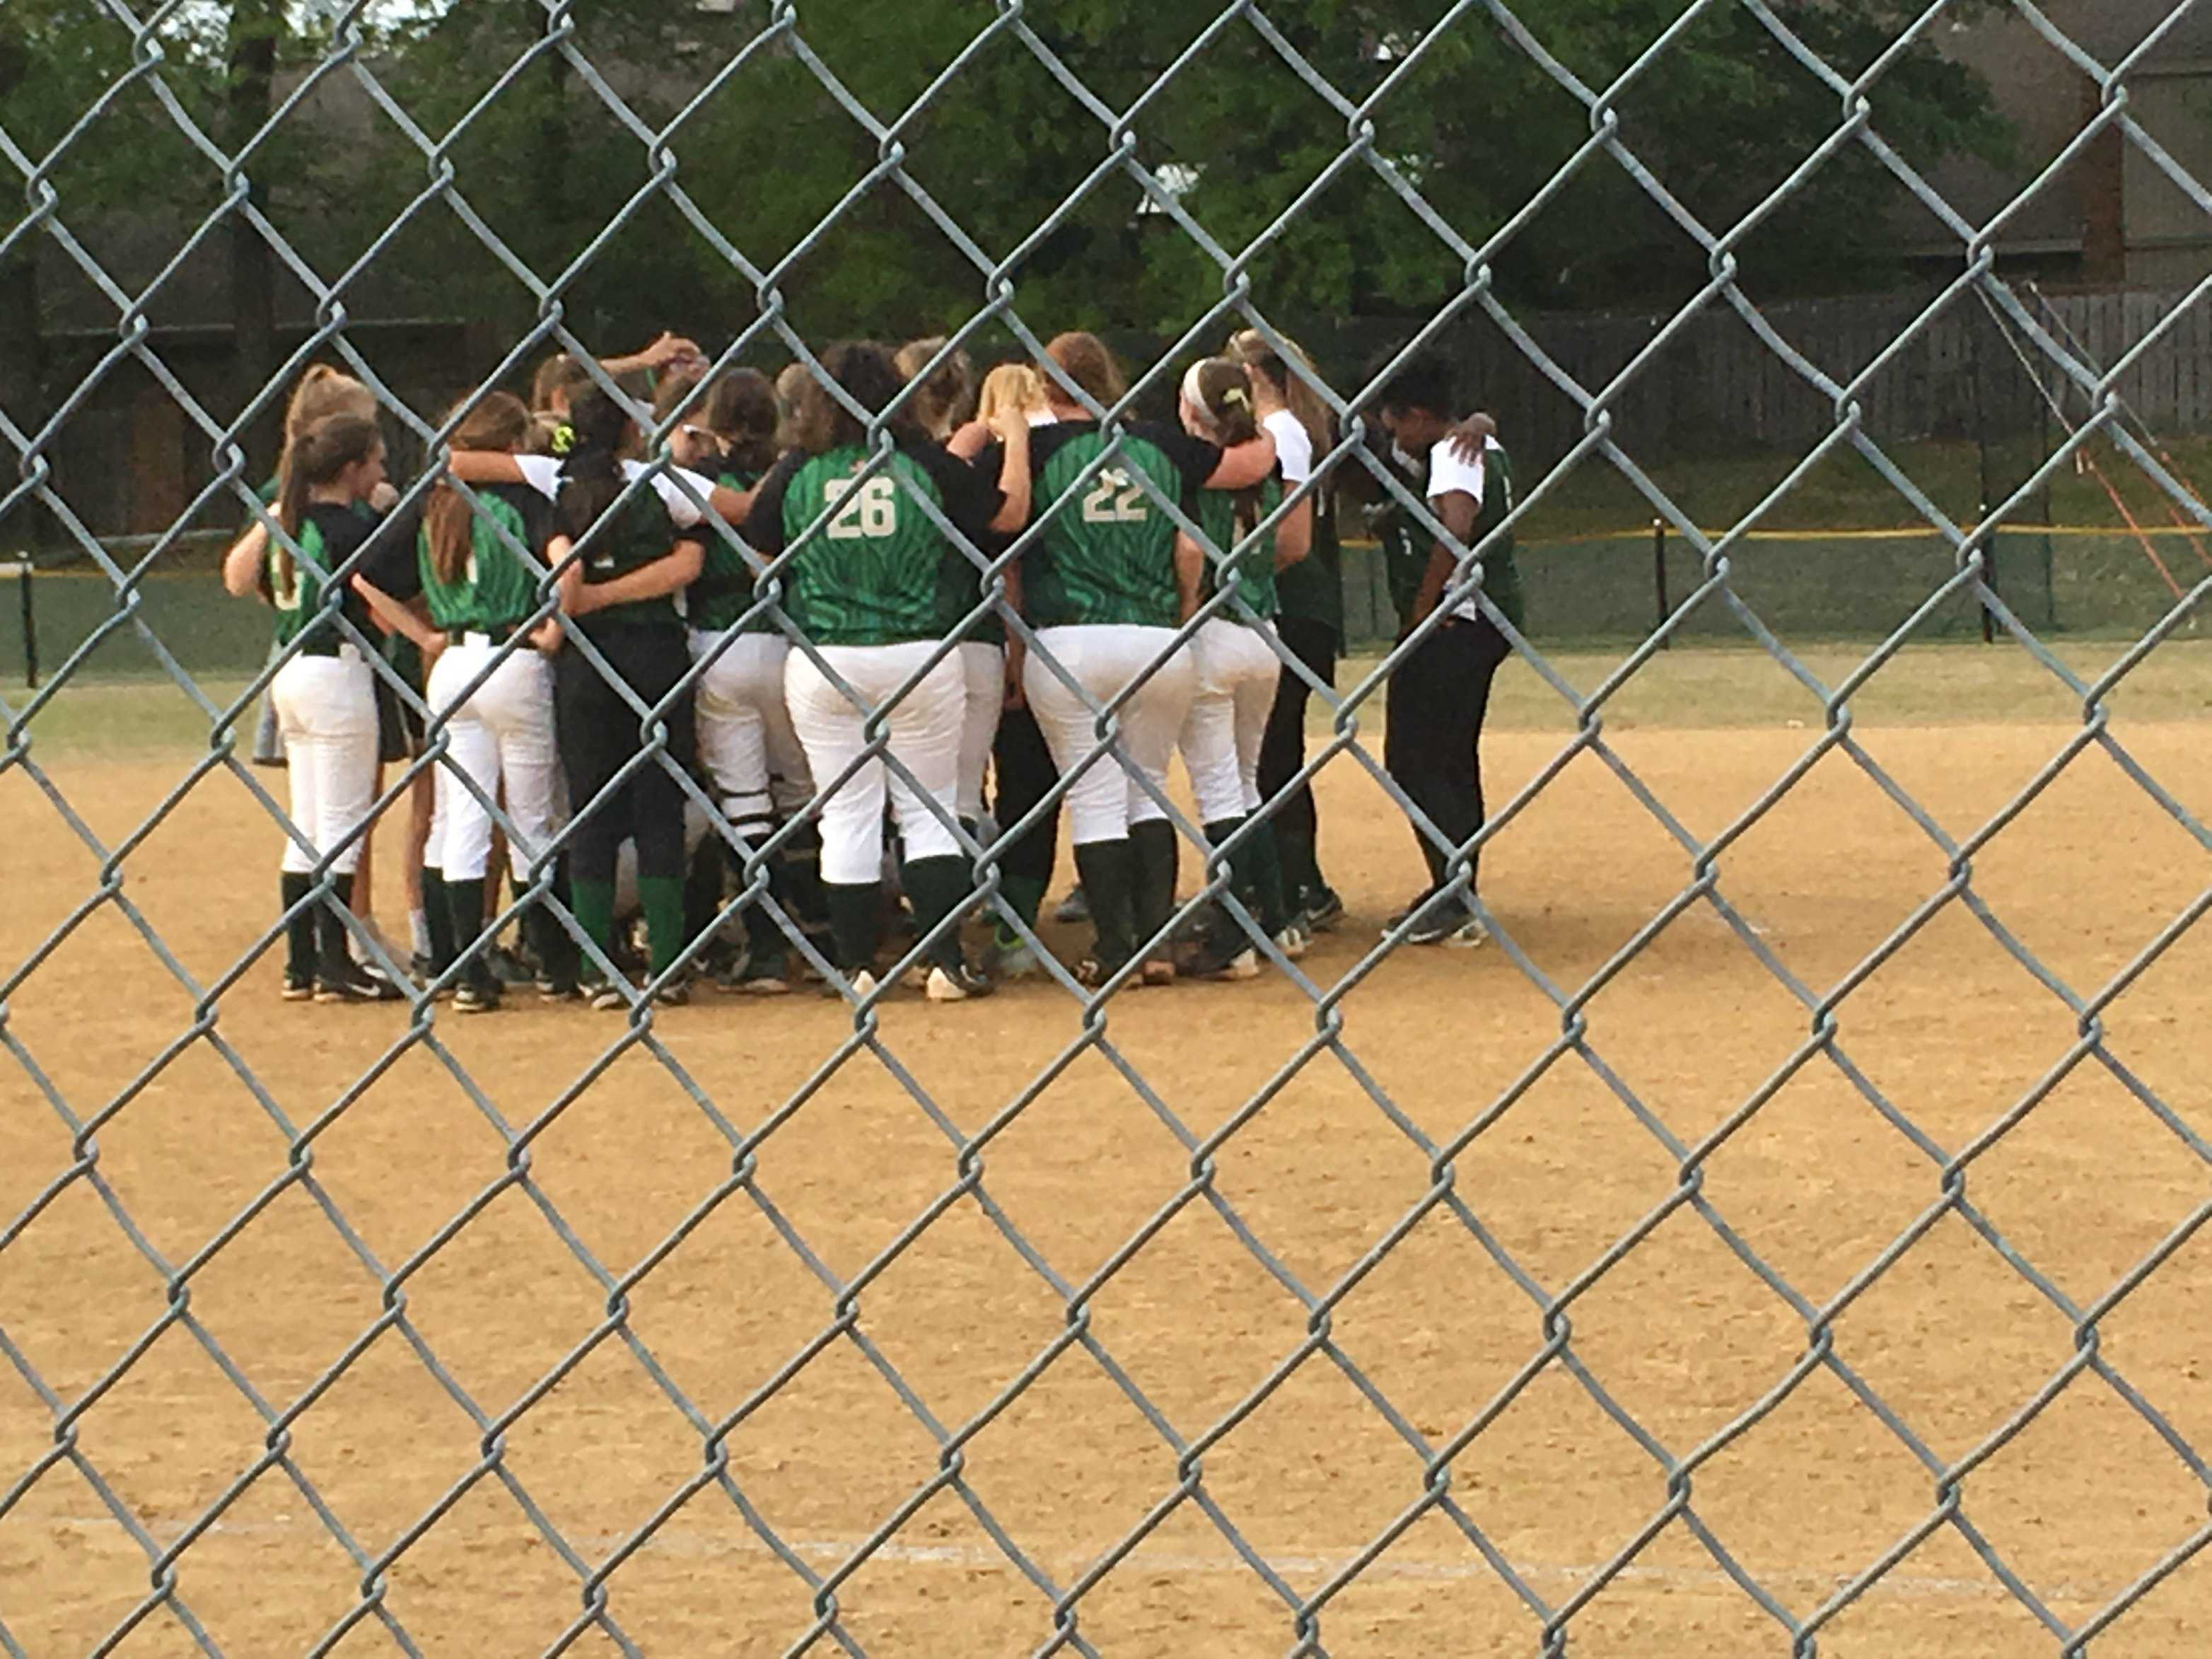 The Lady Spartans and FACS Crusaders in a group huddle after the game on April 18.